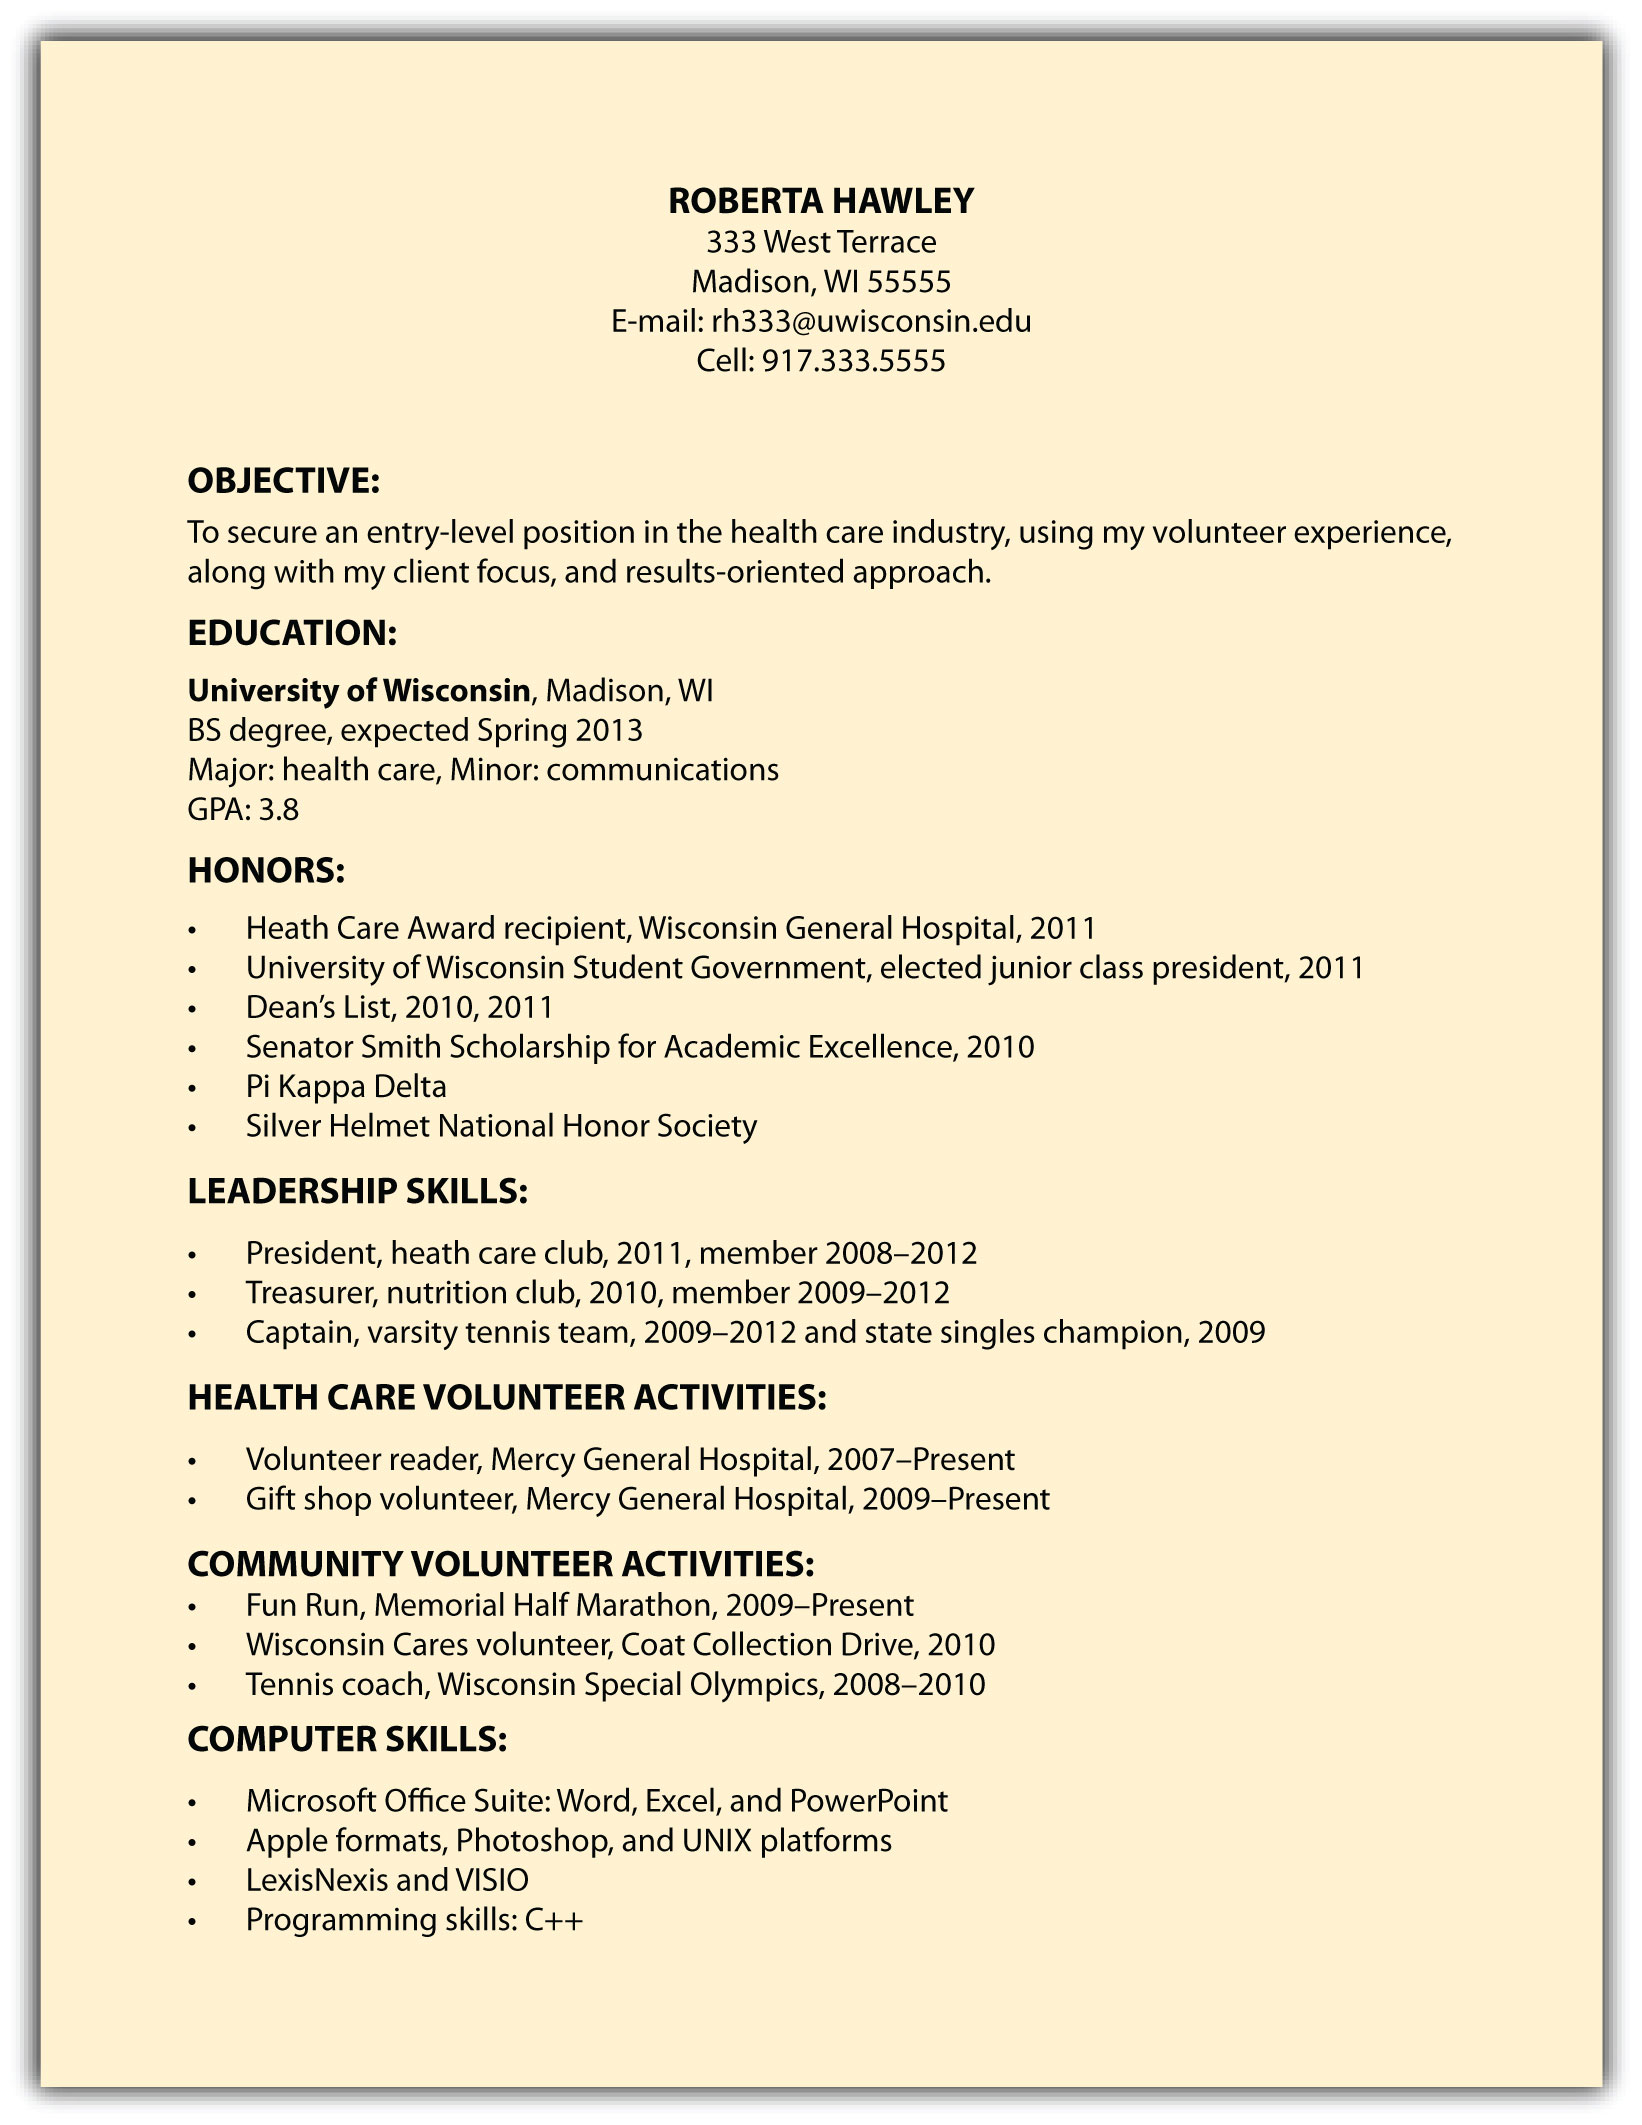 Resume Honors And Activities Sample